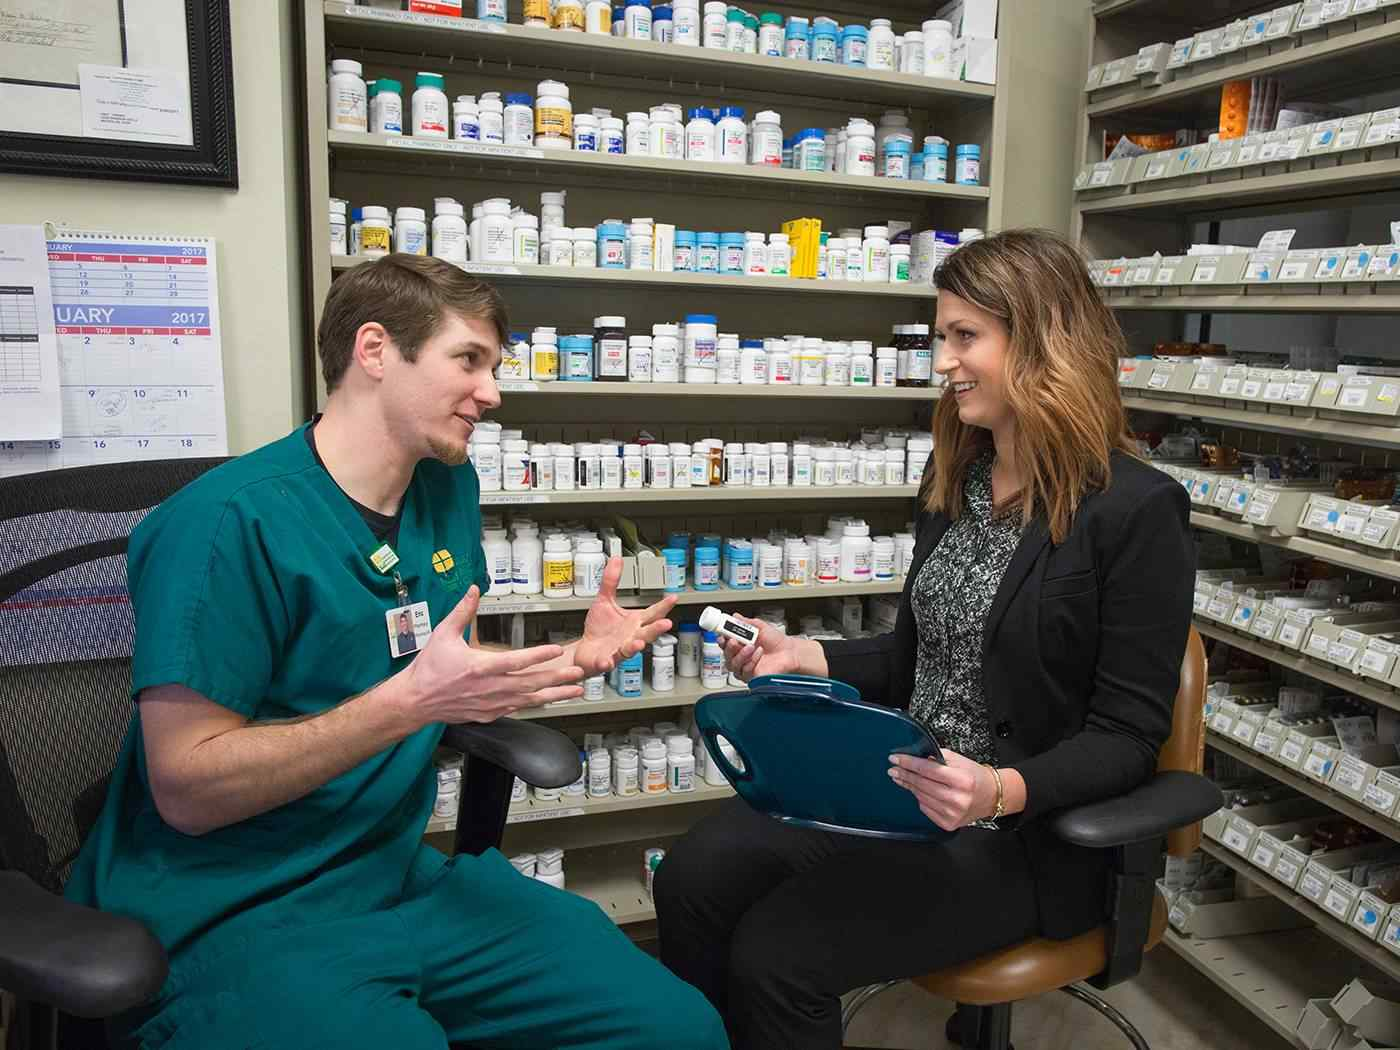 Student speaks with representative about prescriptions.